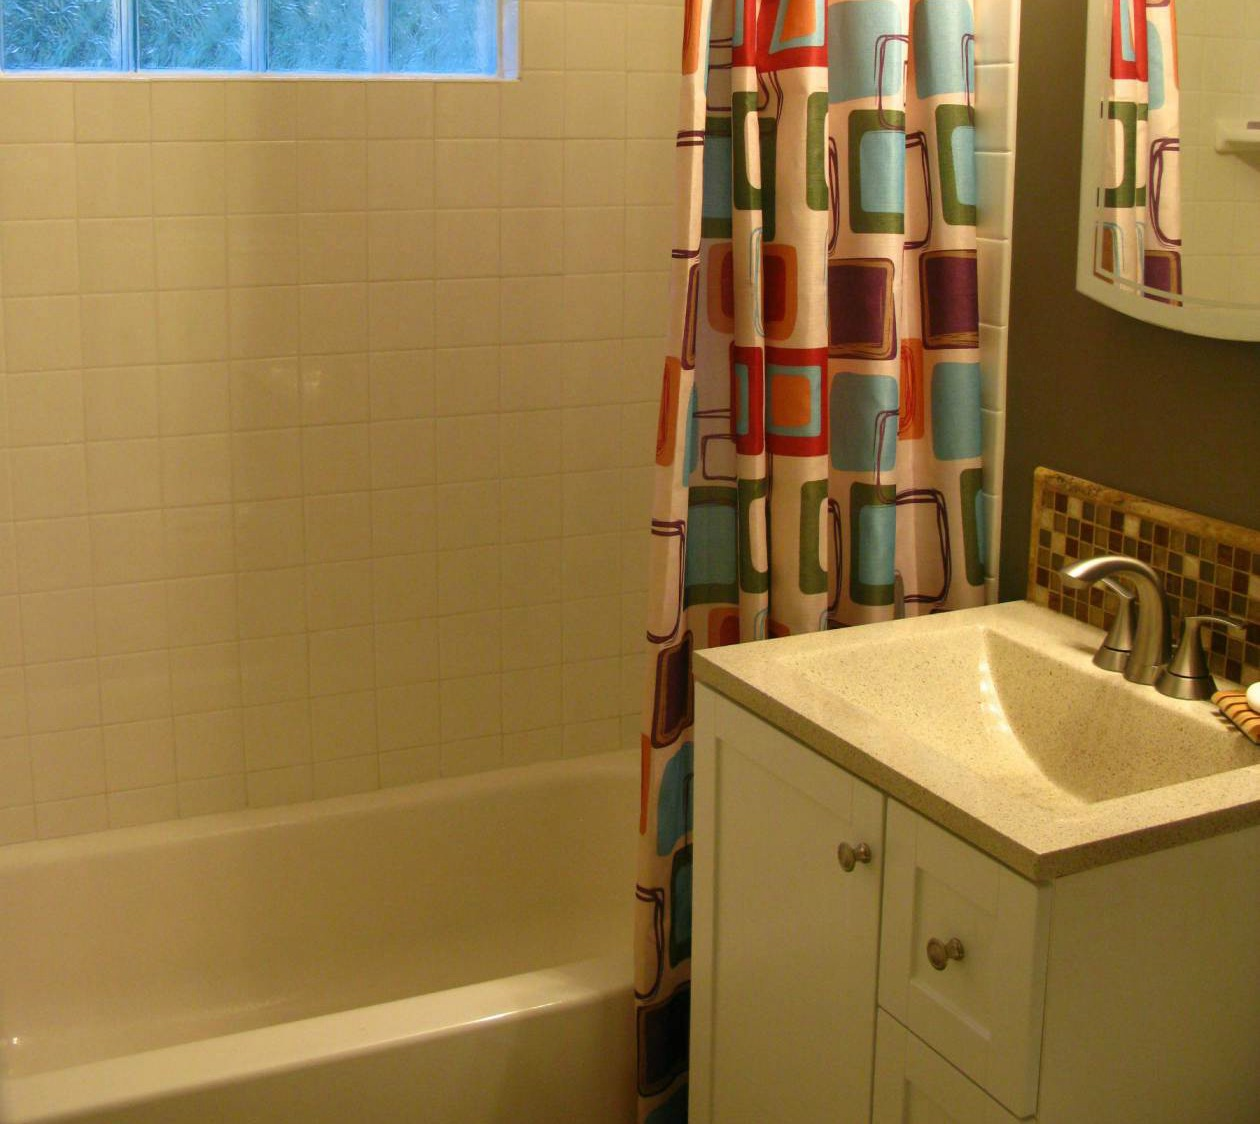 How To Start A Bathroom Remodel Classy Bathroom Remodel From Start To Finish Design Decoration